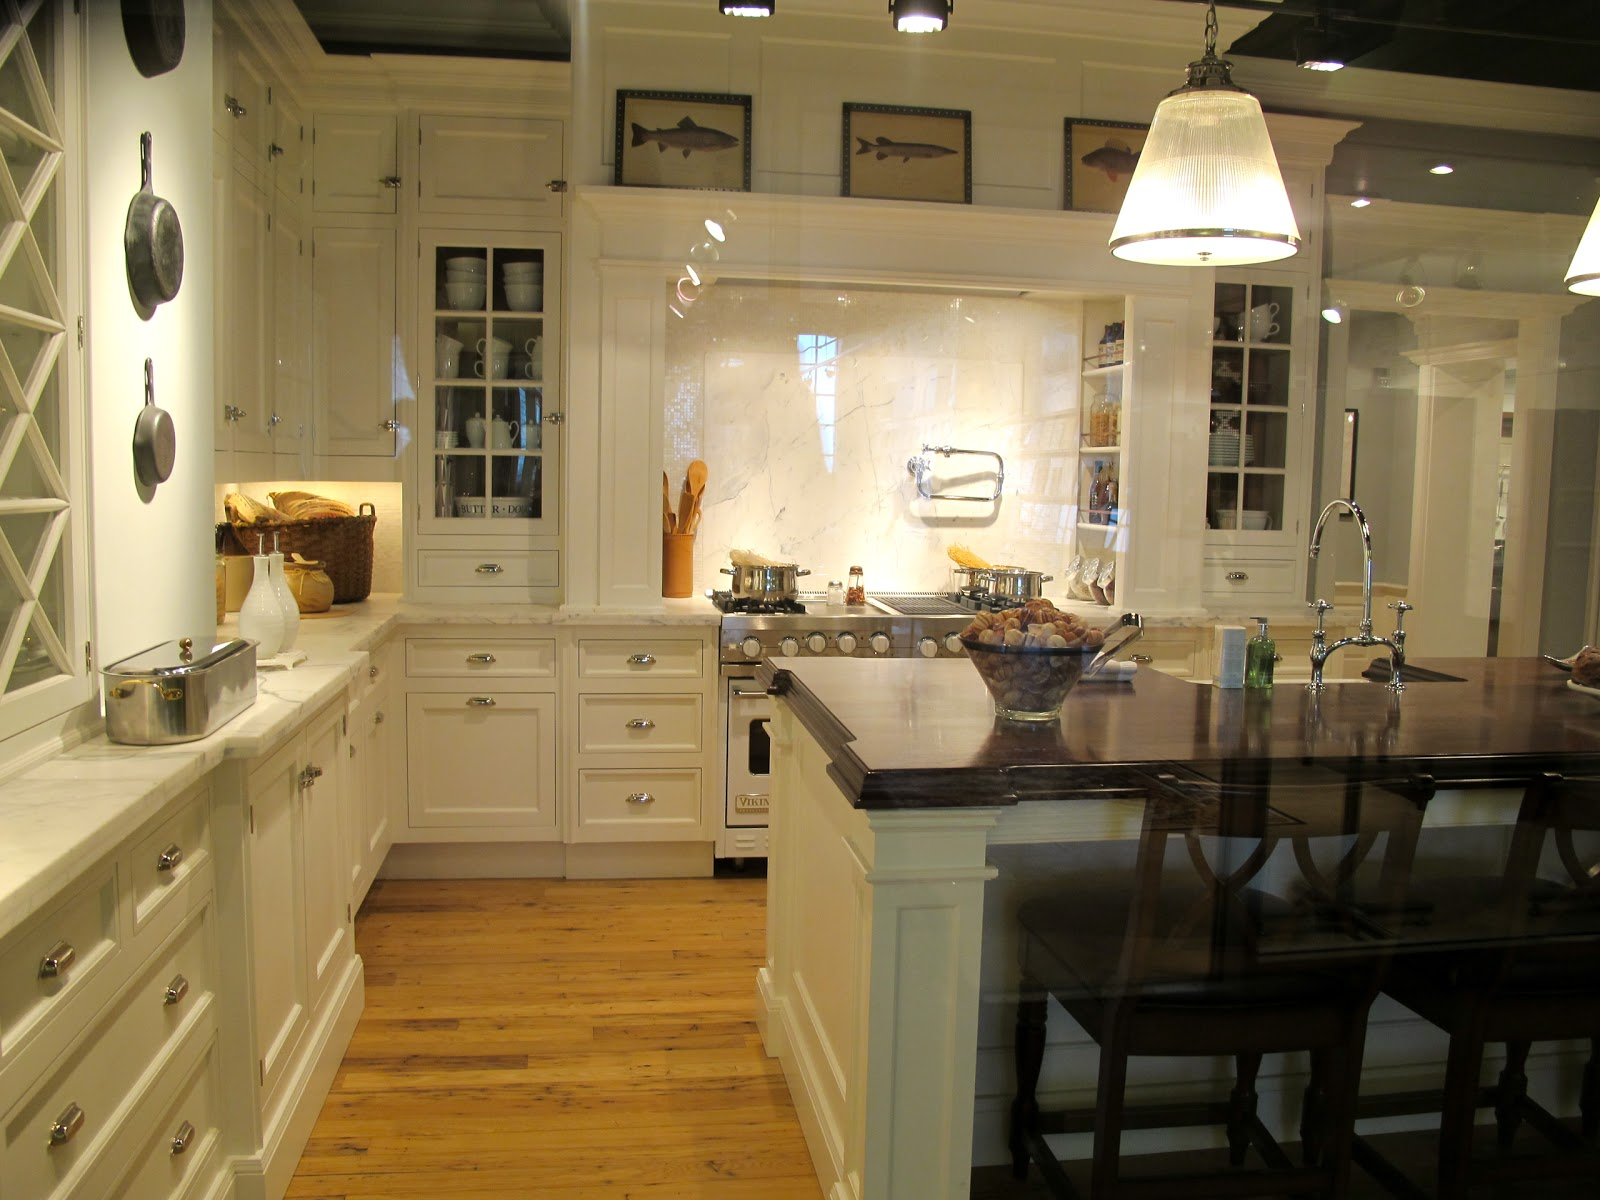 The exciting Galley kitchen ideas for narrow spaces images